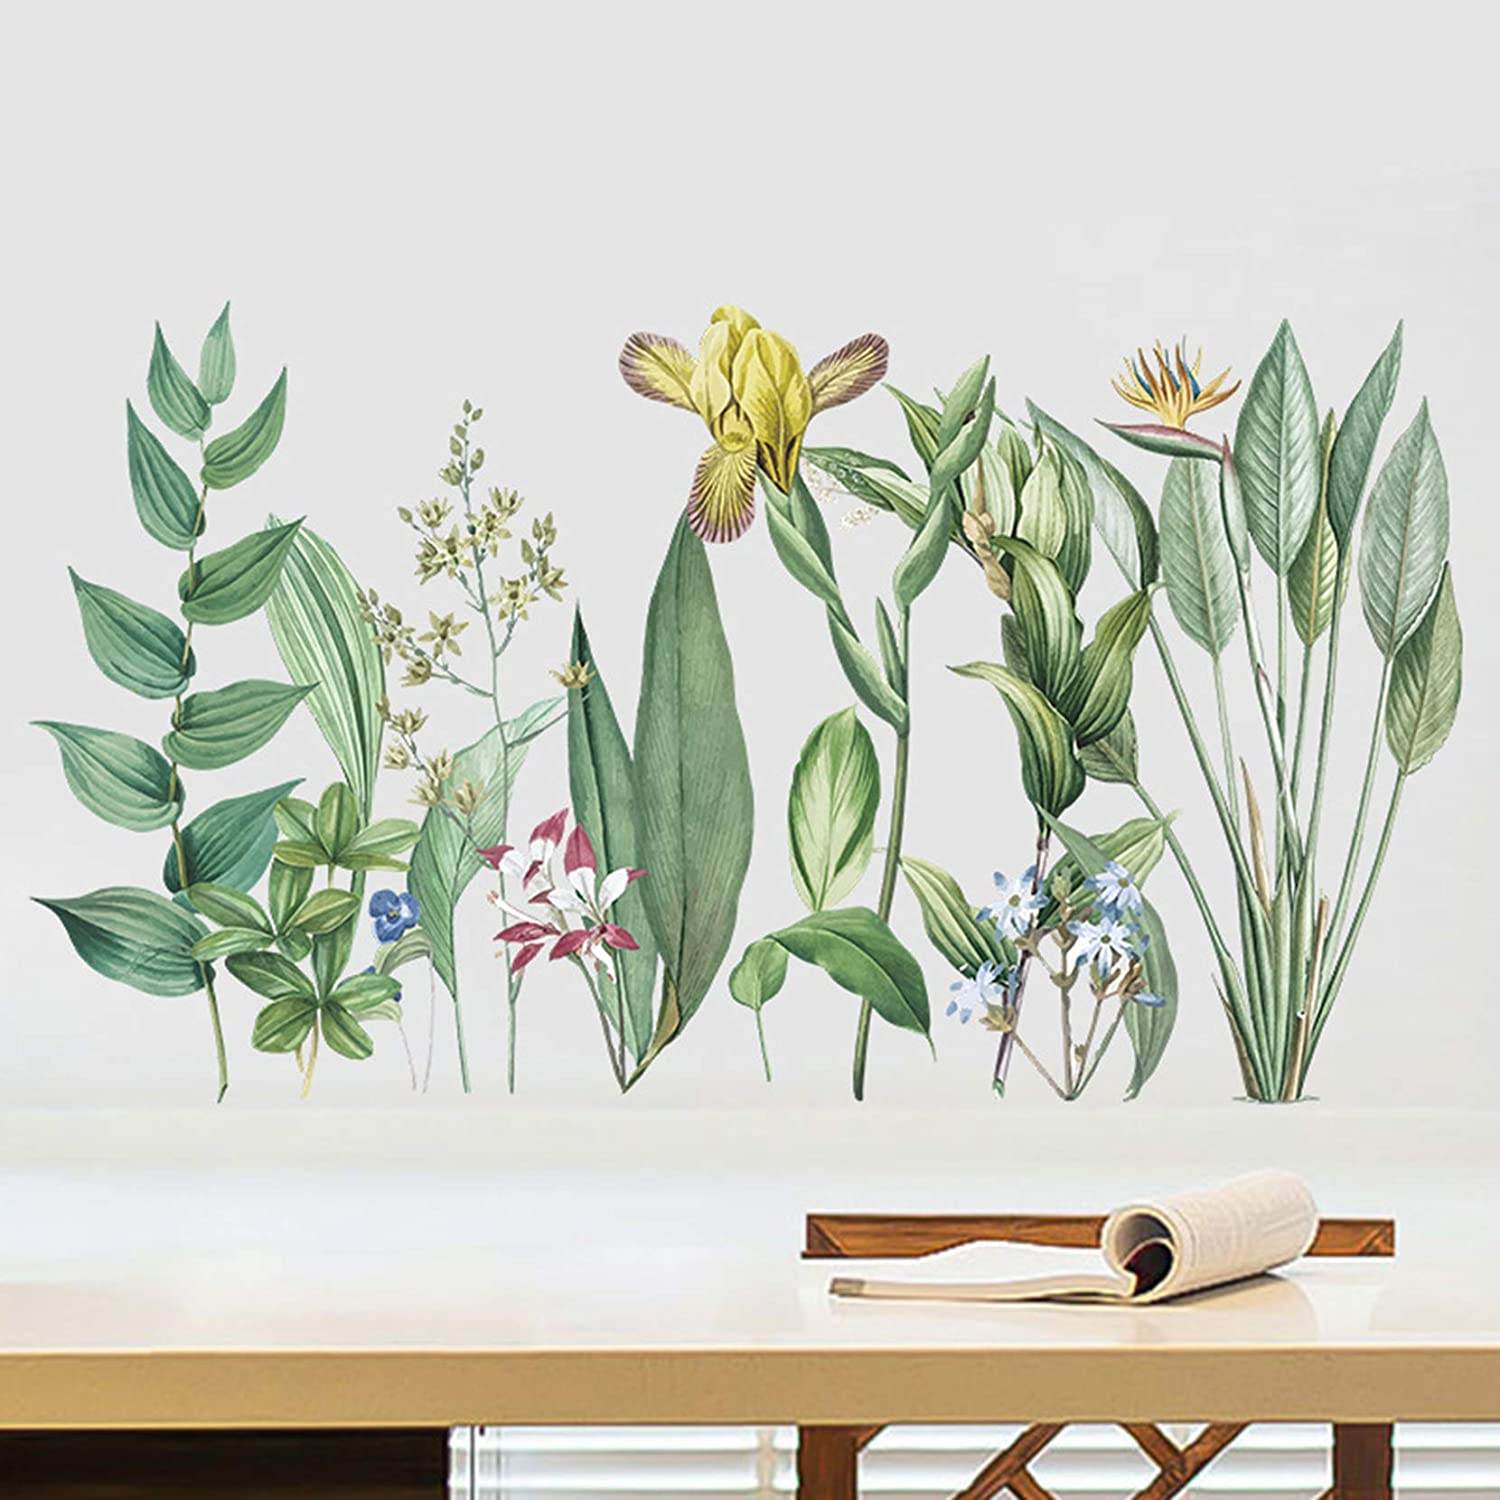 MOLANCIA Green Plants Potted Wall Stickers, Nature Tropical Leaf Wall Decals, Removable Green Plants Wallpaper, Monstera Palms Tree Leaf Vinyl Wall Art Mural Decor for Kitchen Living Room Bedroom